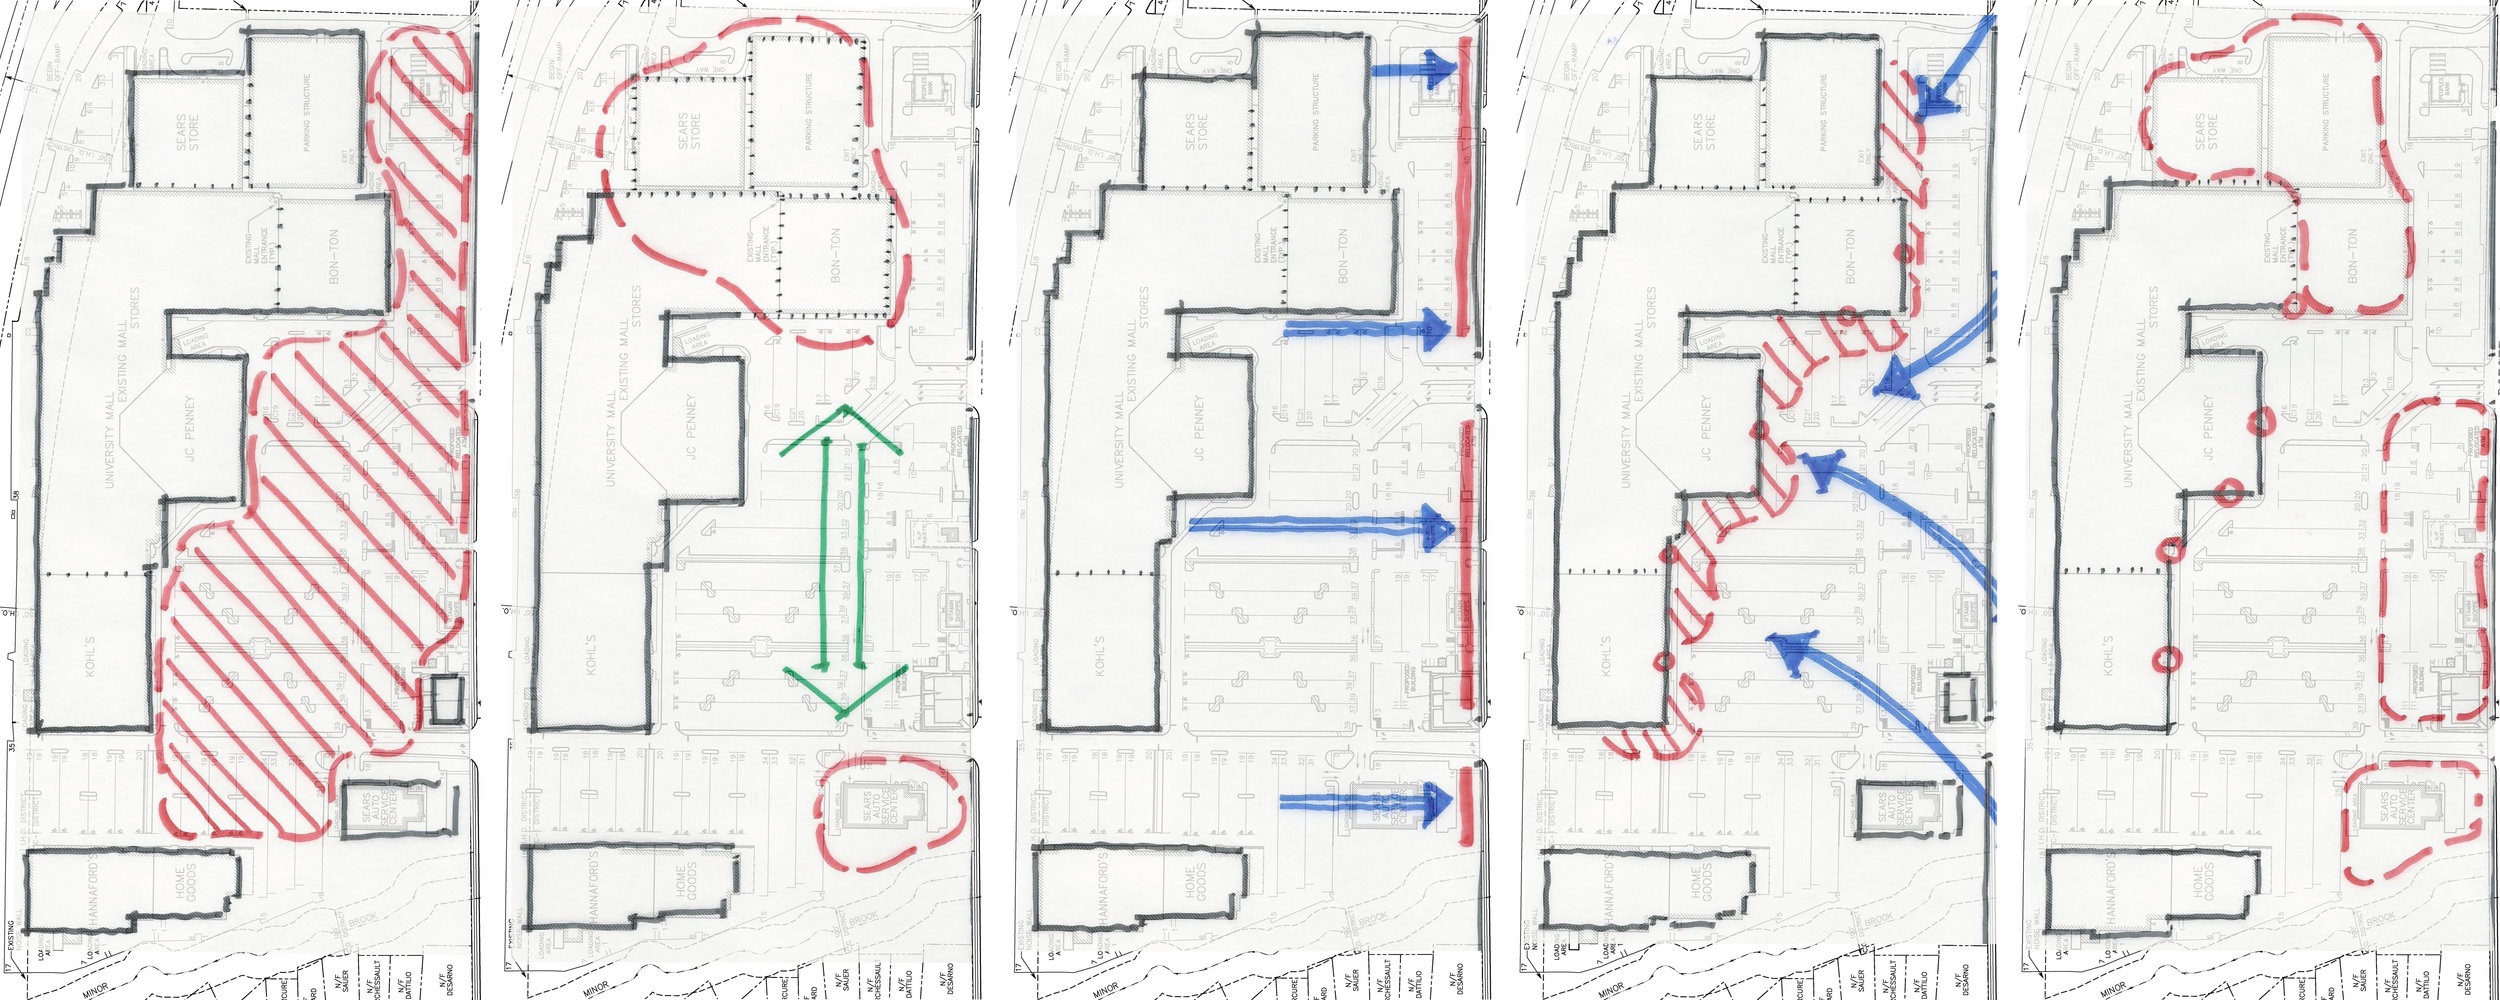 University Mall - Initial Site Response Diagrams